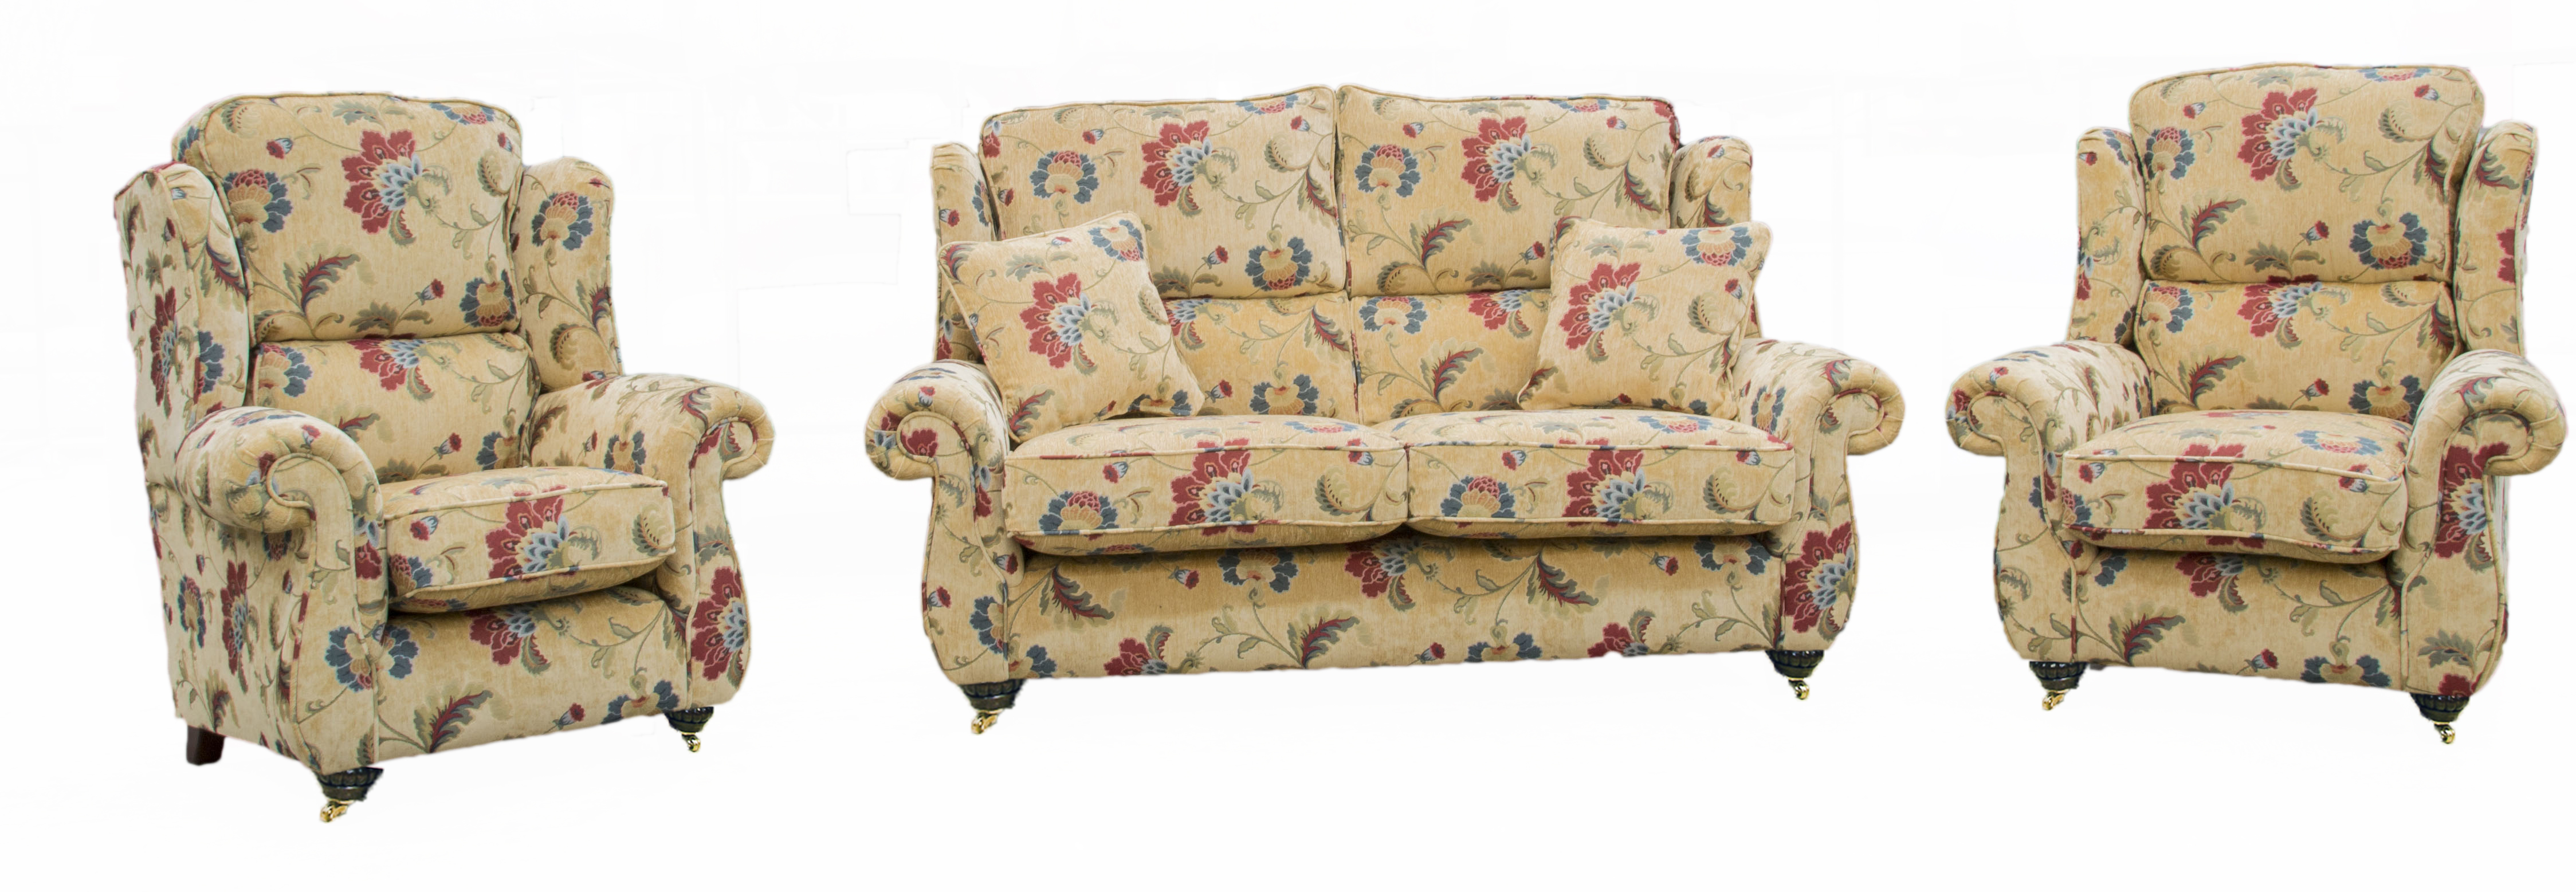 Grace-chair-grevill-2str-greville-chair-Bronze-Collection